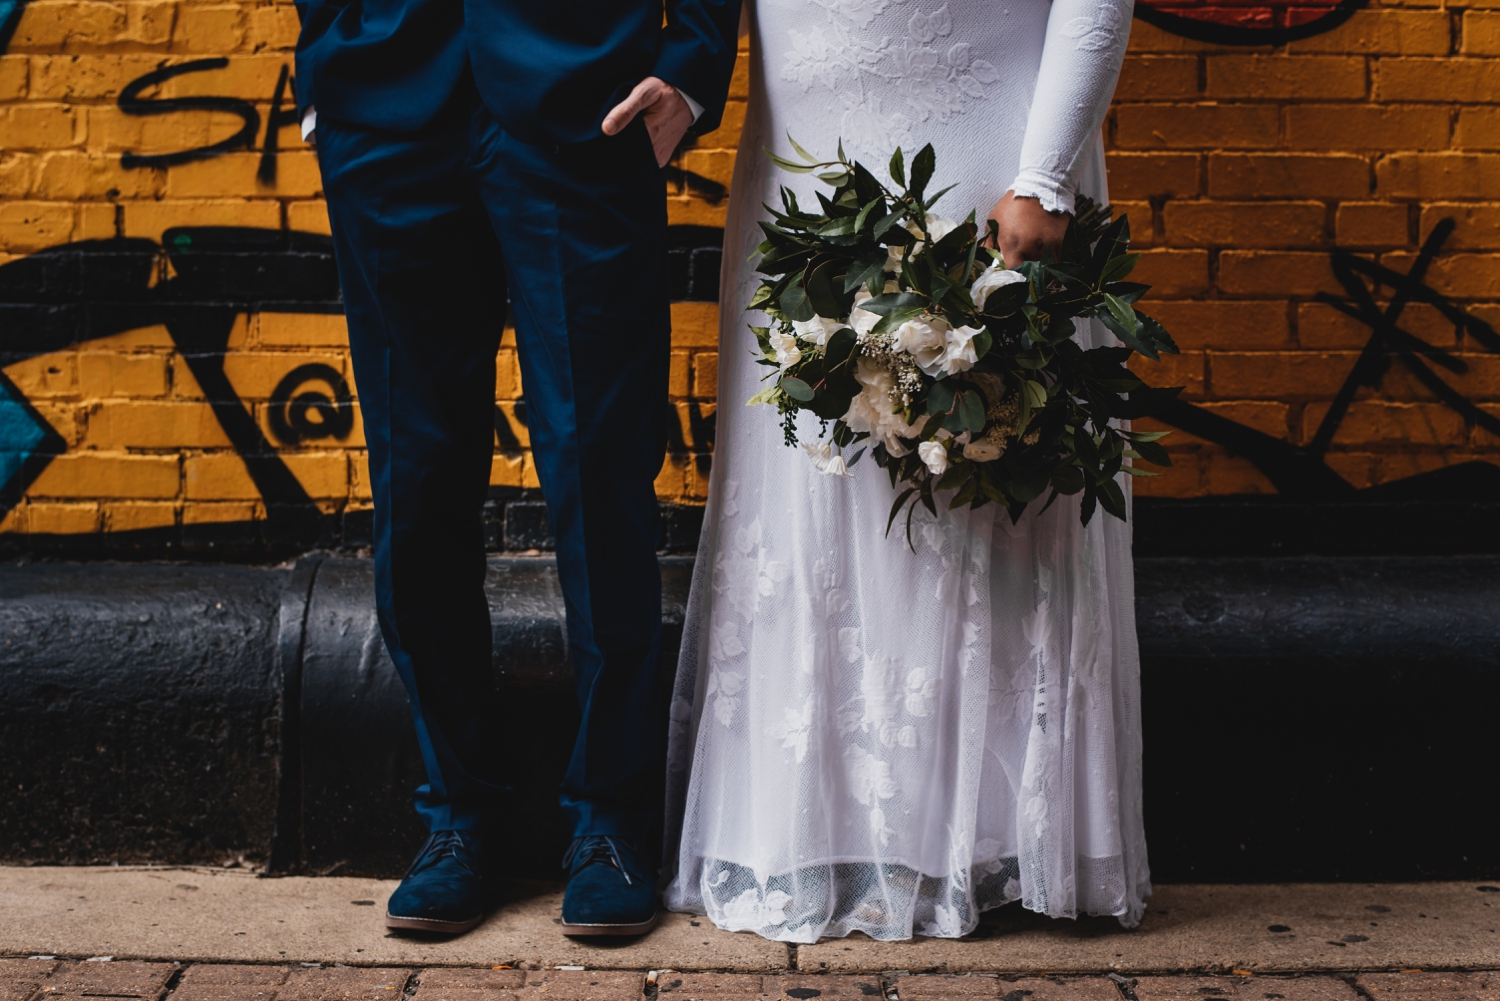 Chicago Elopement photographer - The Adamkovi, bride and groom shoes and bouquet detail in front of graffiti